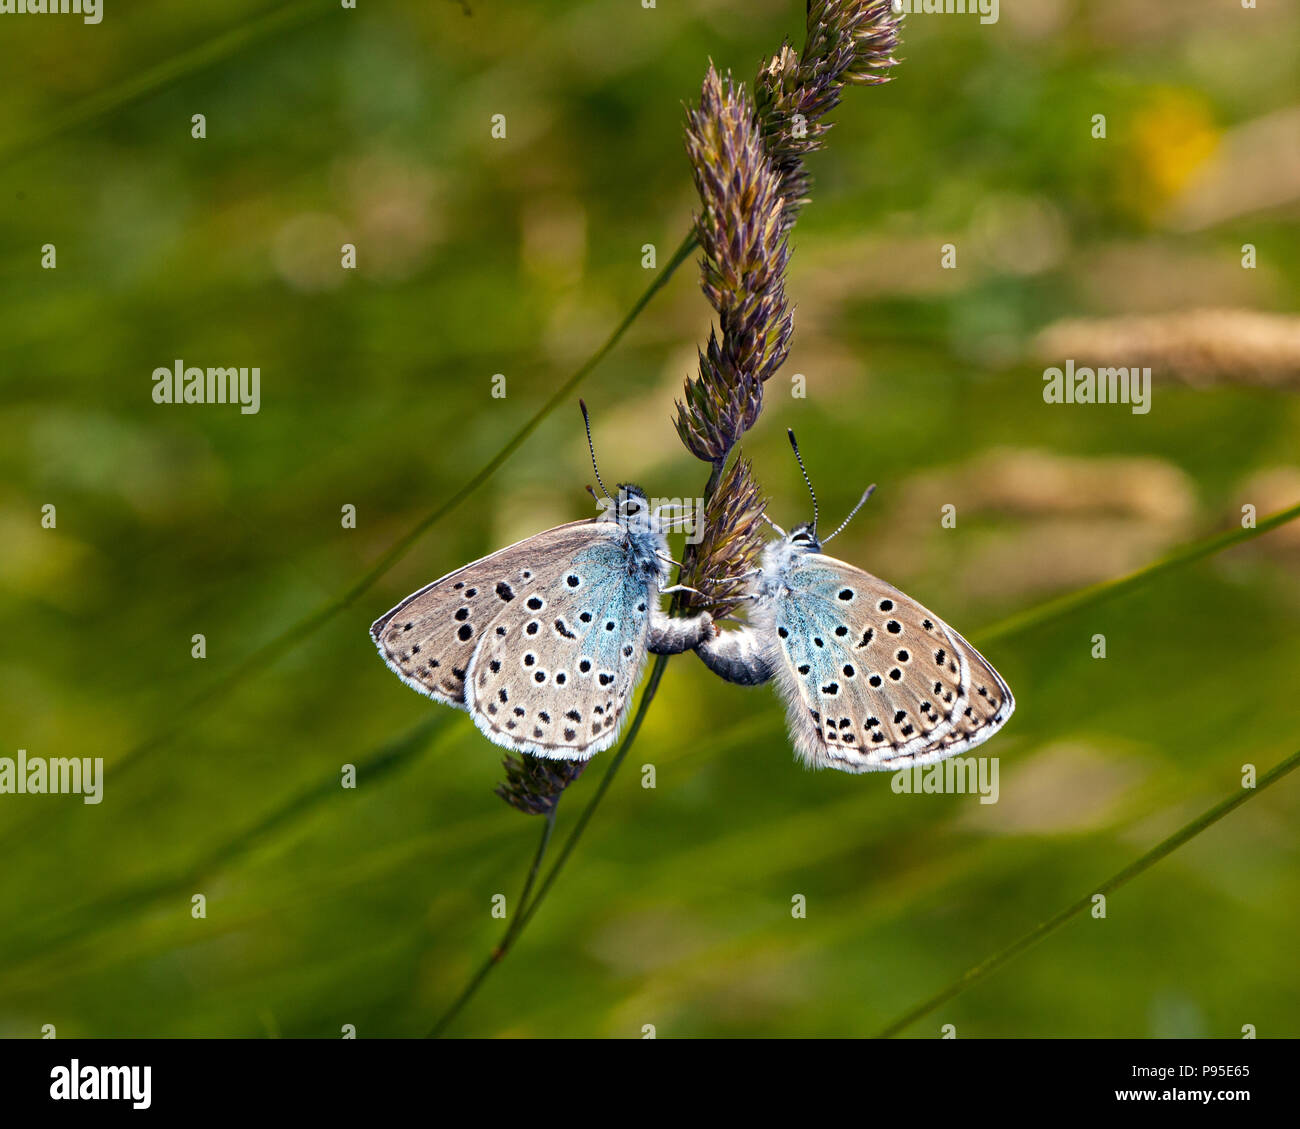 Pair Large blue butterflies  Maculinea arion on Collard Hill Somerset after its successful  reintroduction in the 1980s after becoming extinct in 1979 - Stock Image